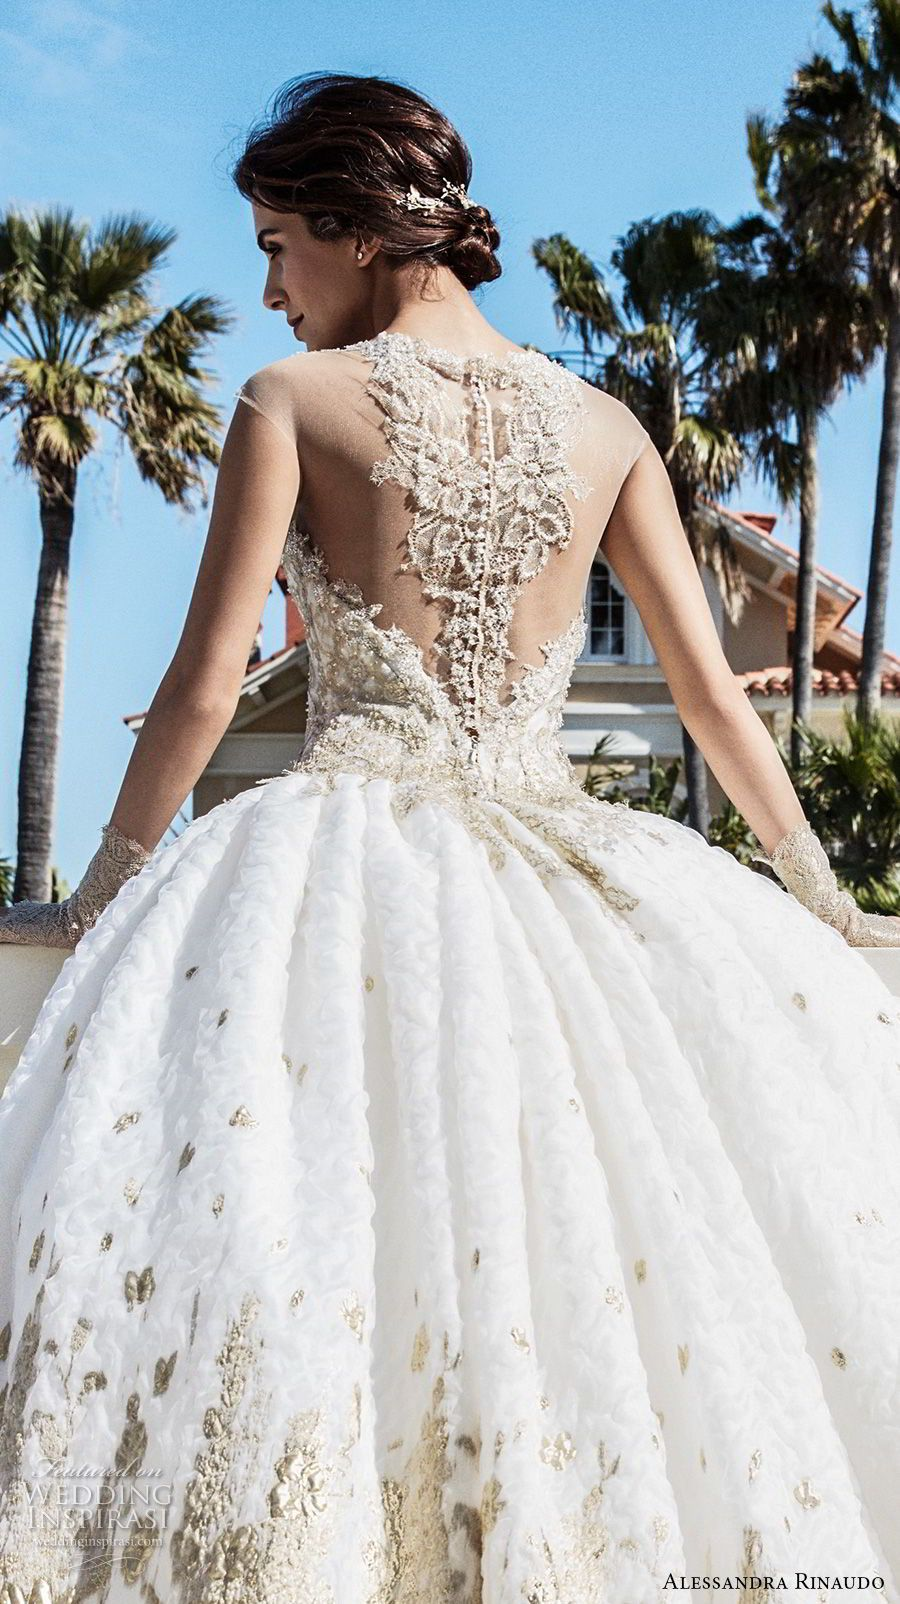 Alessandra Rinaudo 2018 Bridal Illusion Strapless Sweetheart Neckline Heavily Gold Embellished Bodice Princess Ball Gown Wedding Dress Sheer Rasor Back